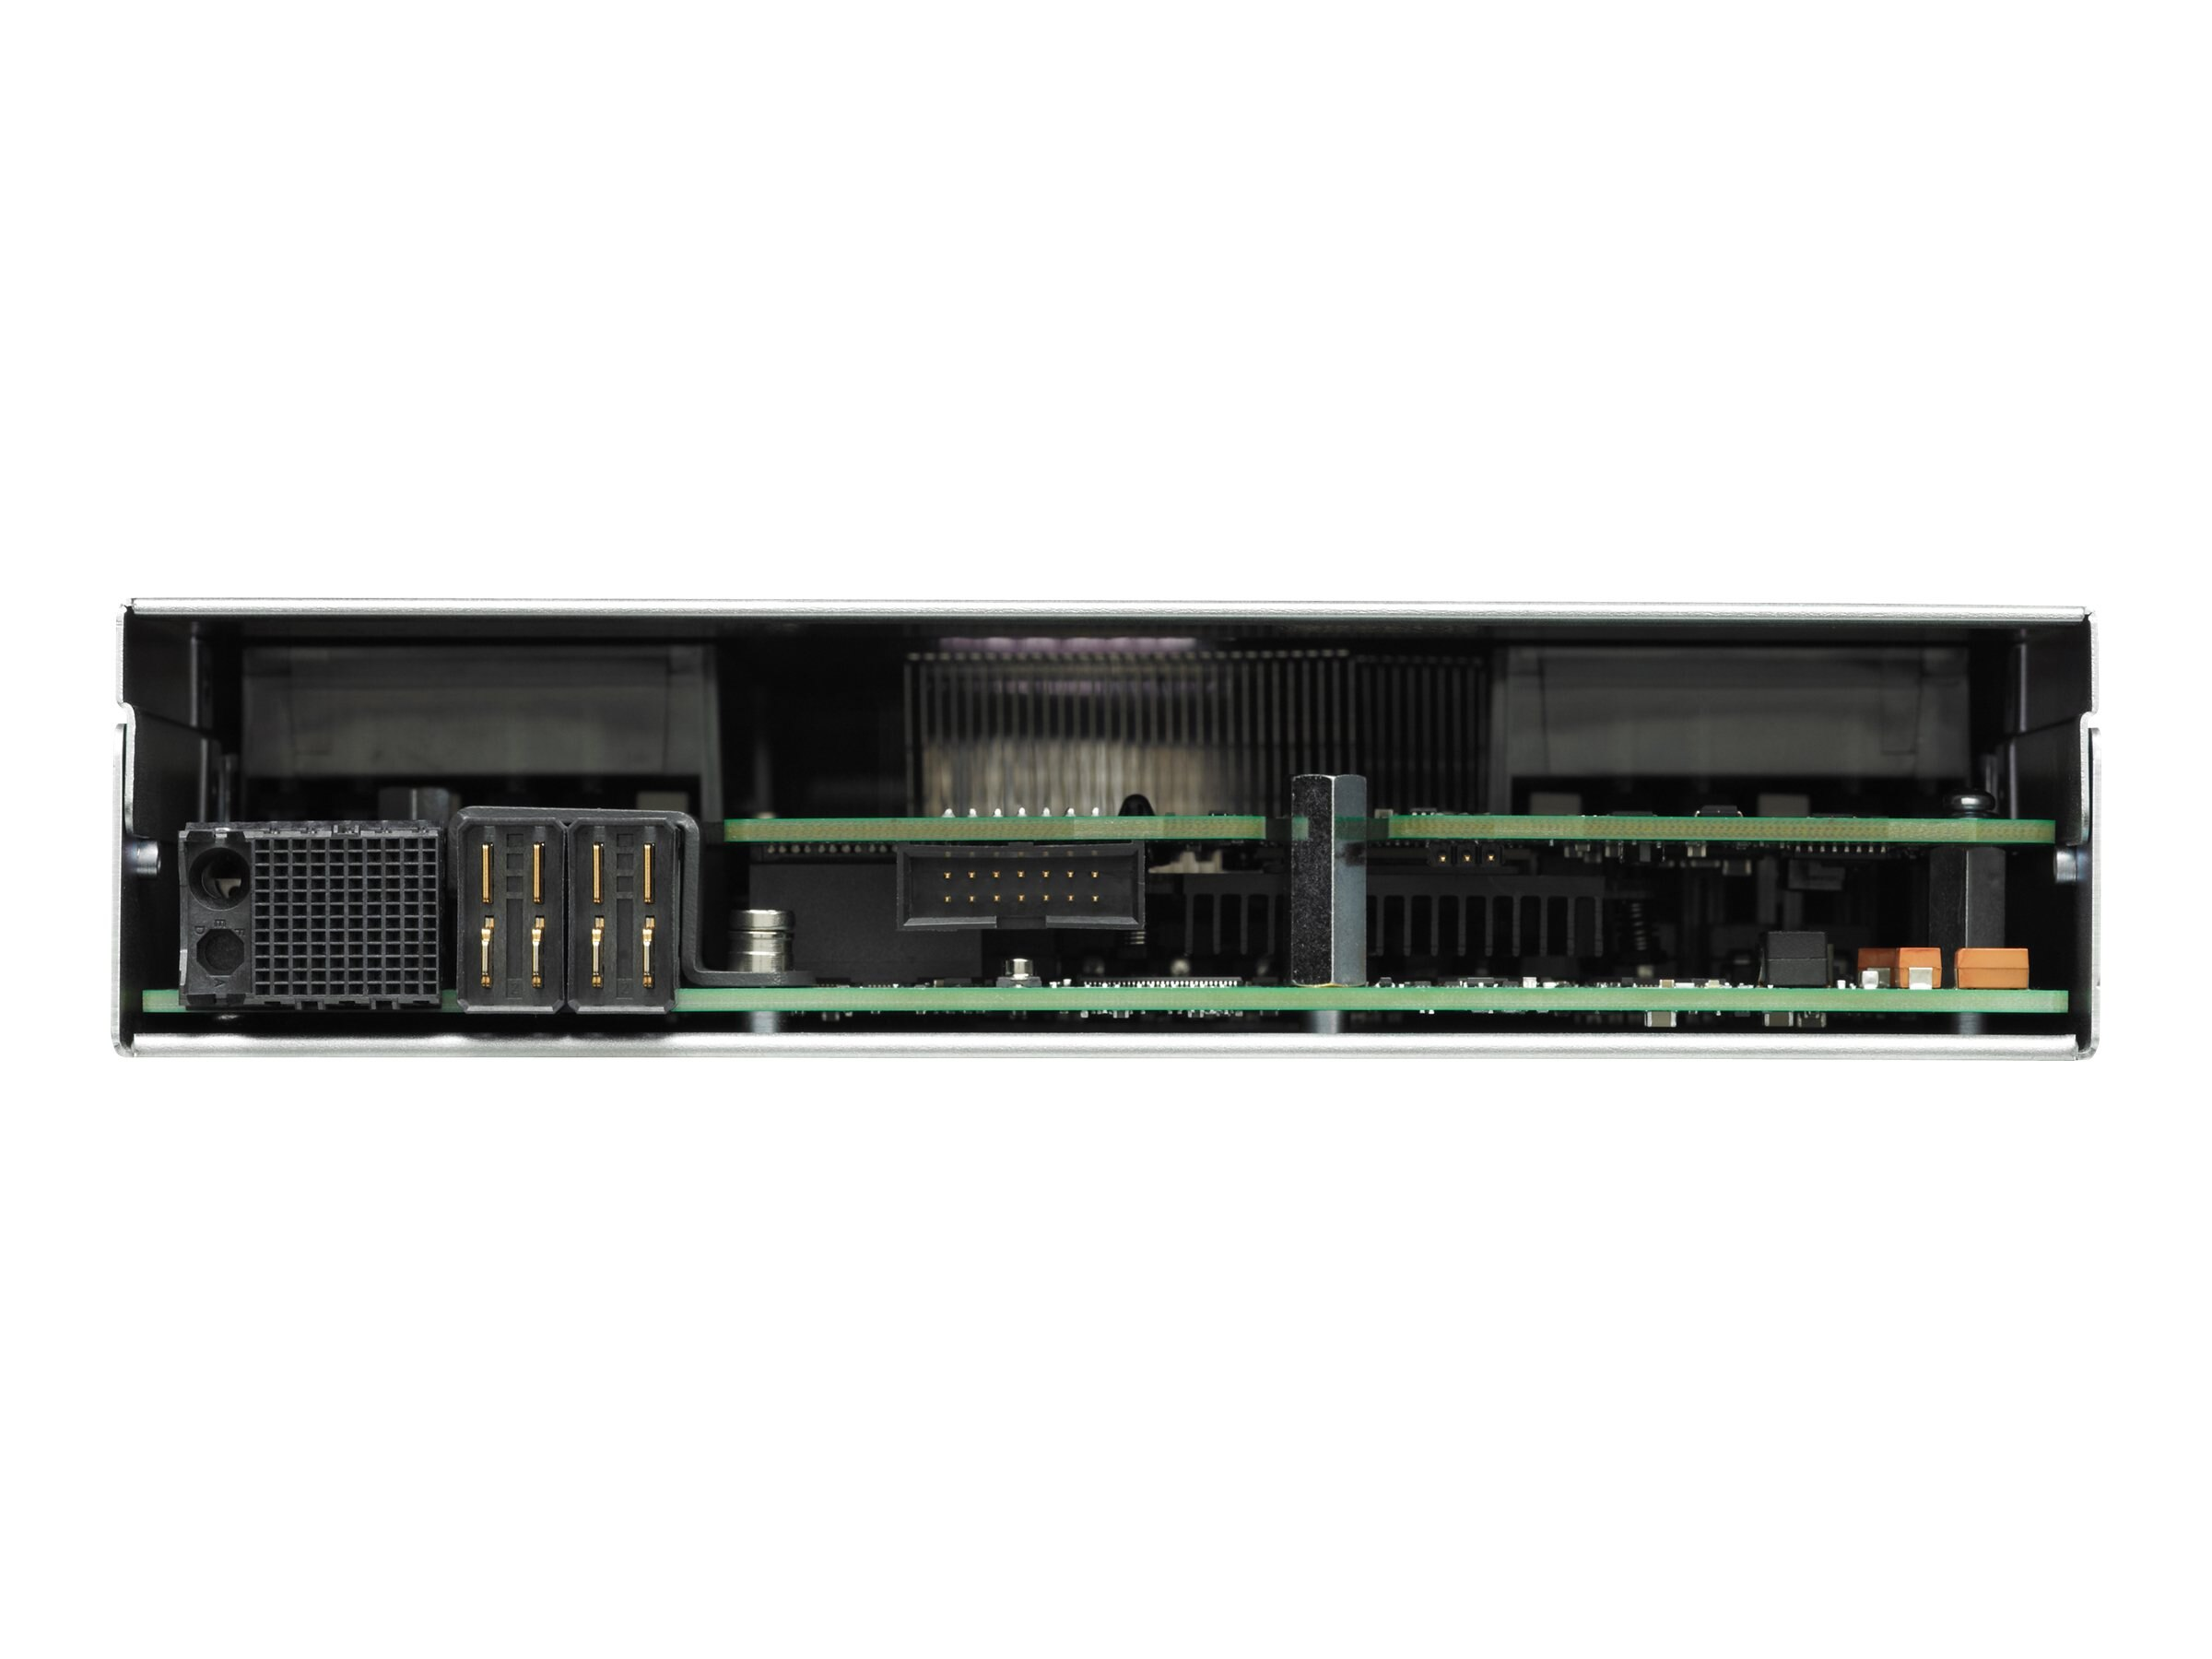 Cisco UCS B200 M3 Entry Plus SmartPlay Expansion Pack (2x) Xeon 6C E5-2620 v2 2.1GHz 64GB 2x2.5 Bays, UCS-EZ7-B200-EP